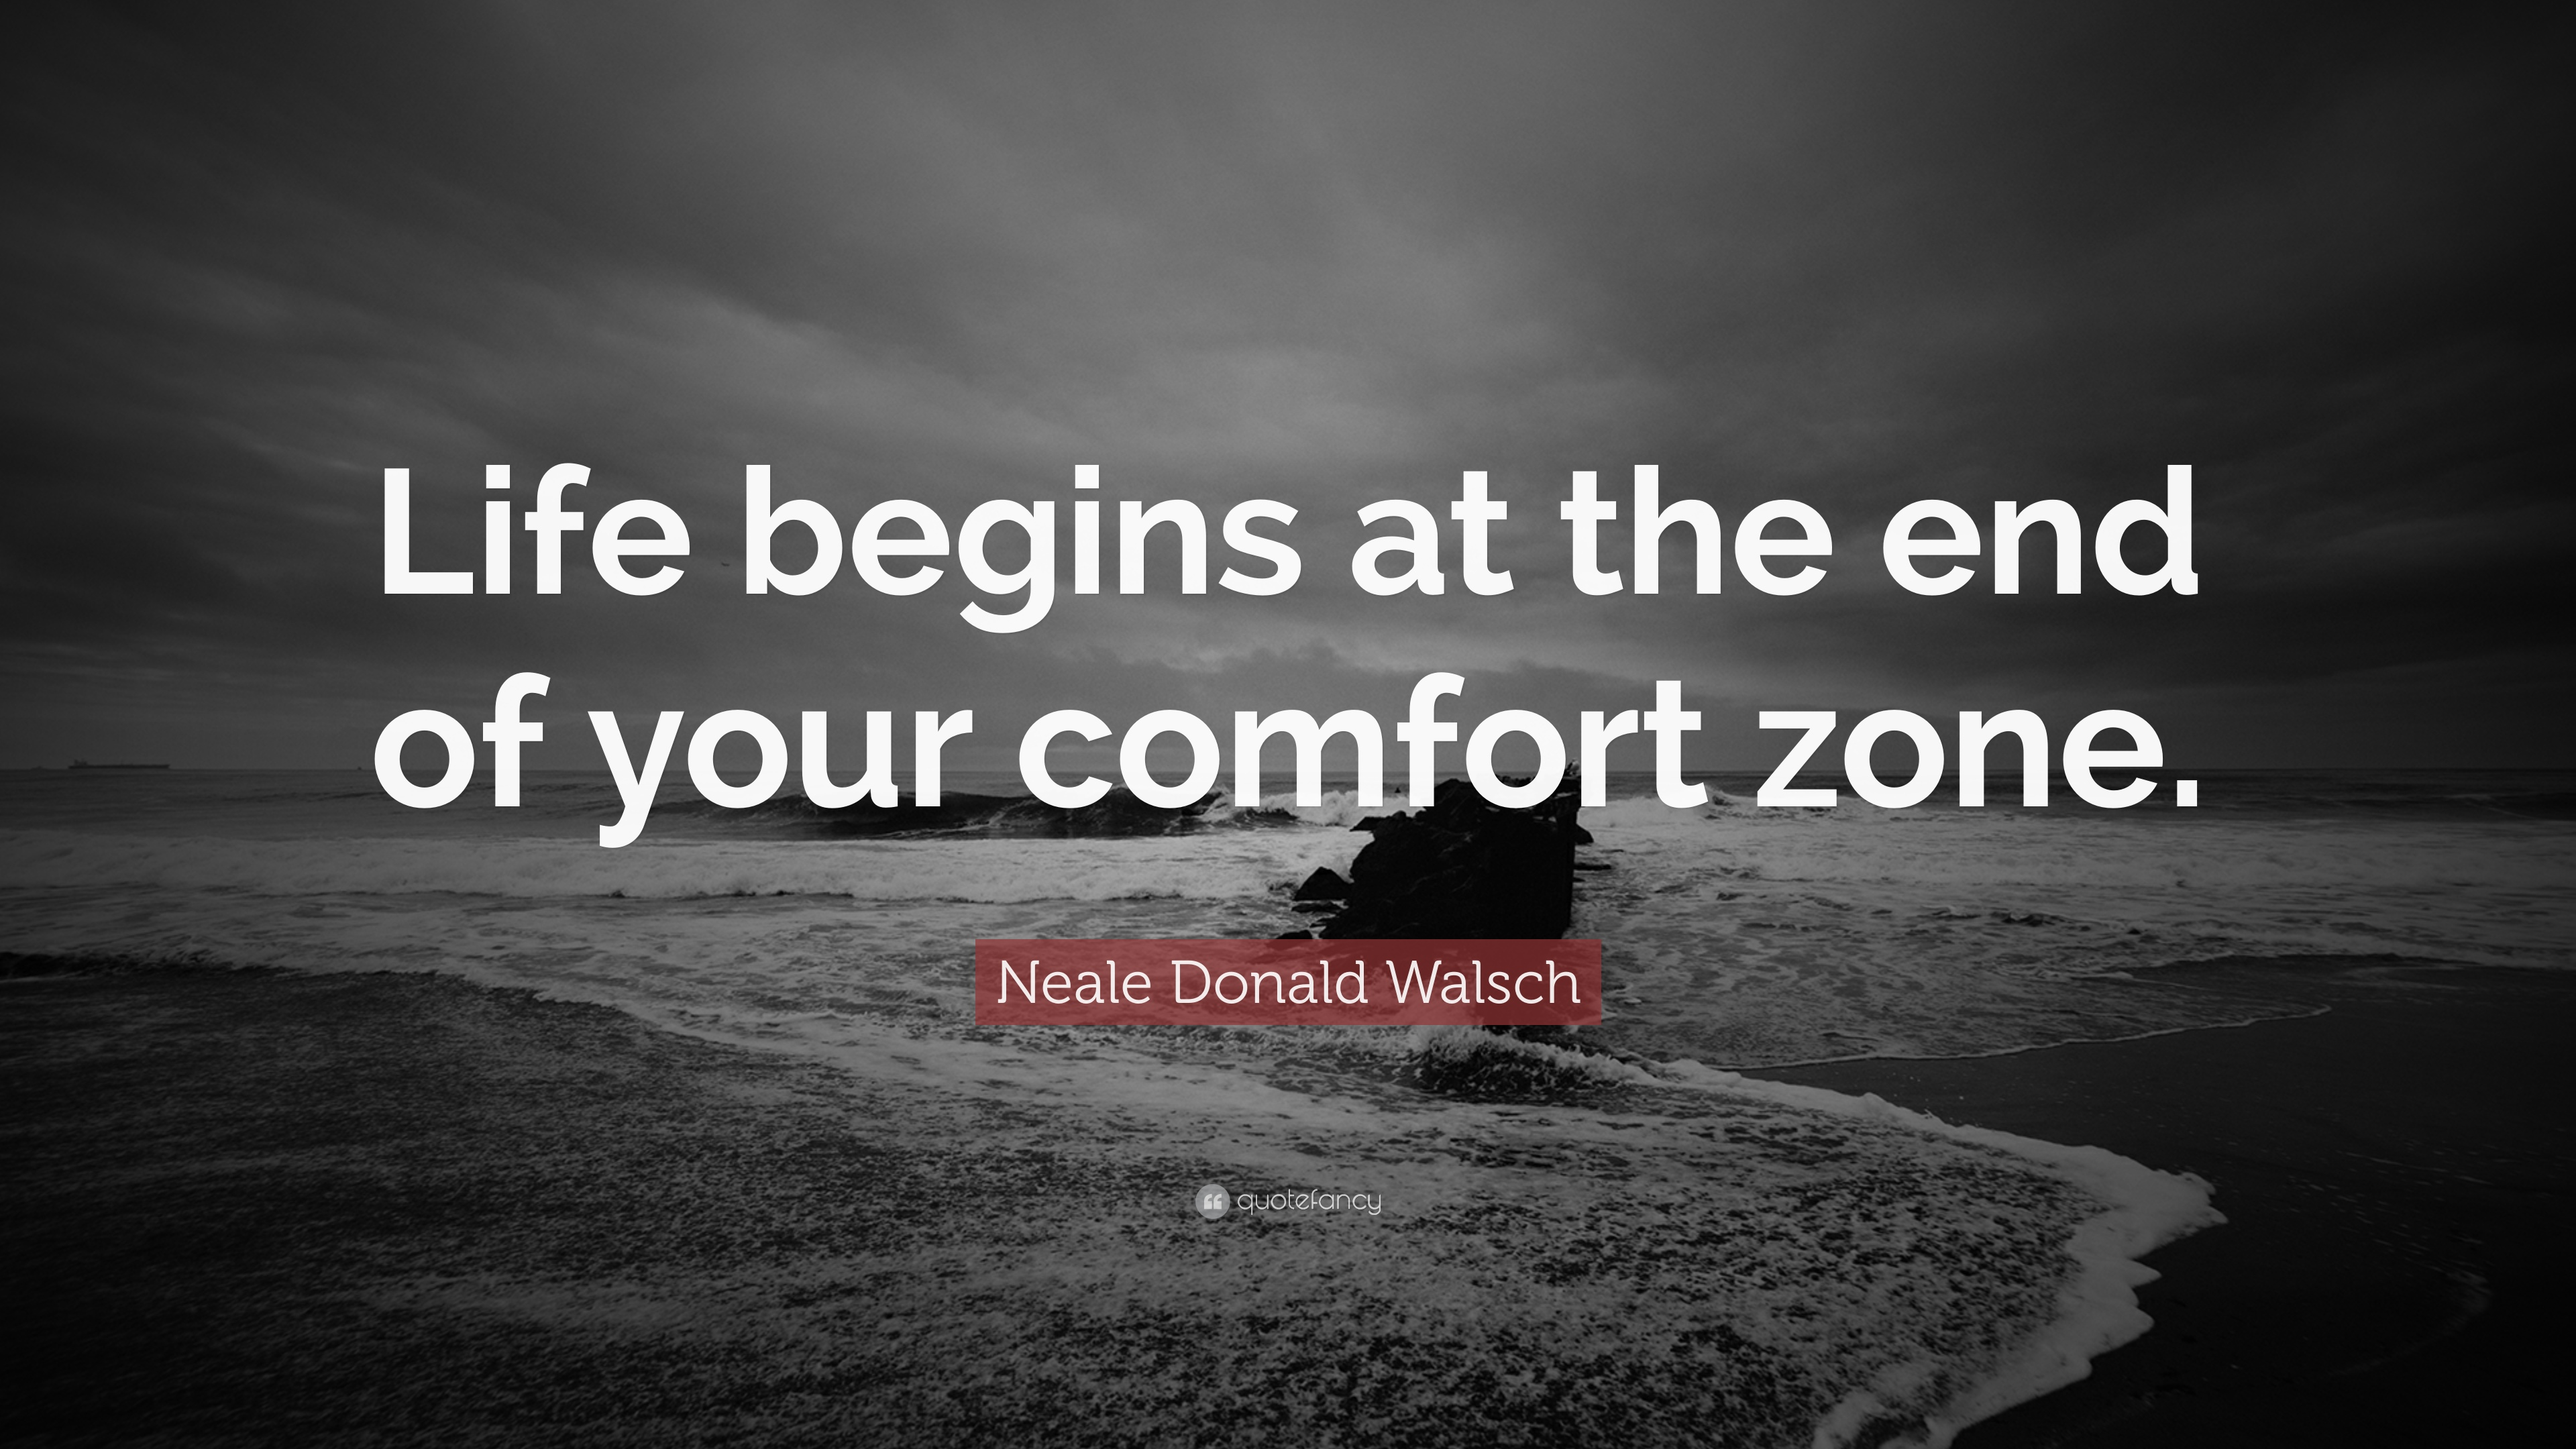 Neale Donald Walsch Quote Life Begins At The End Of Your